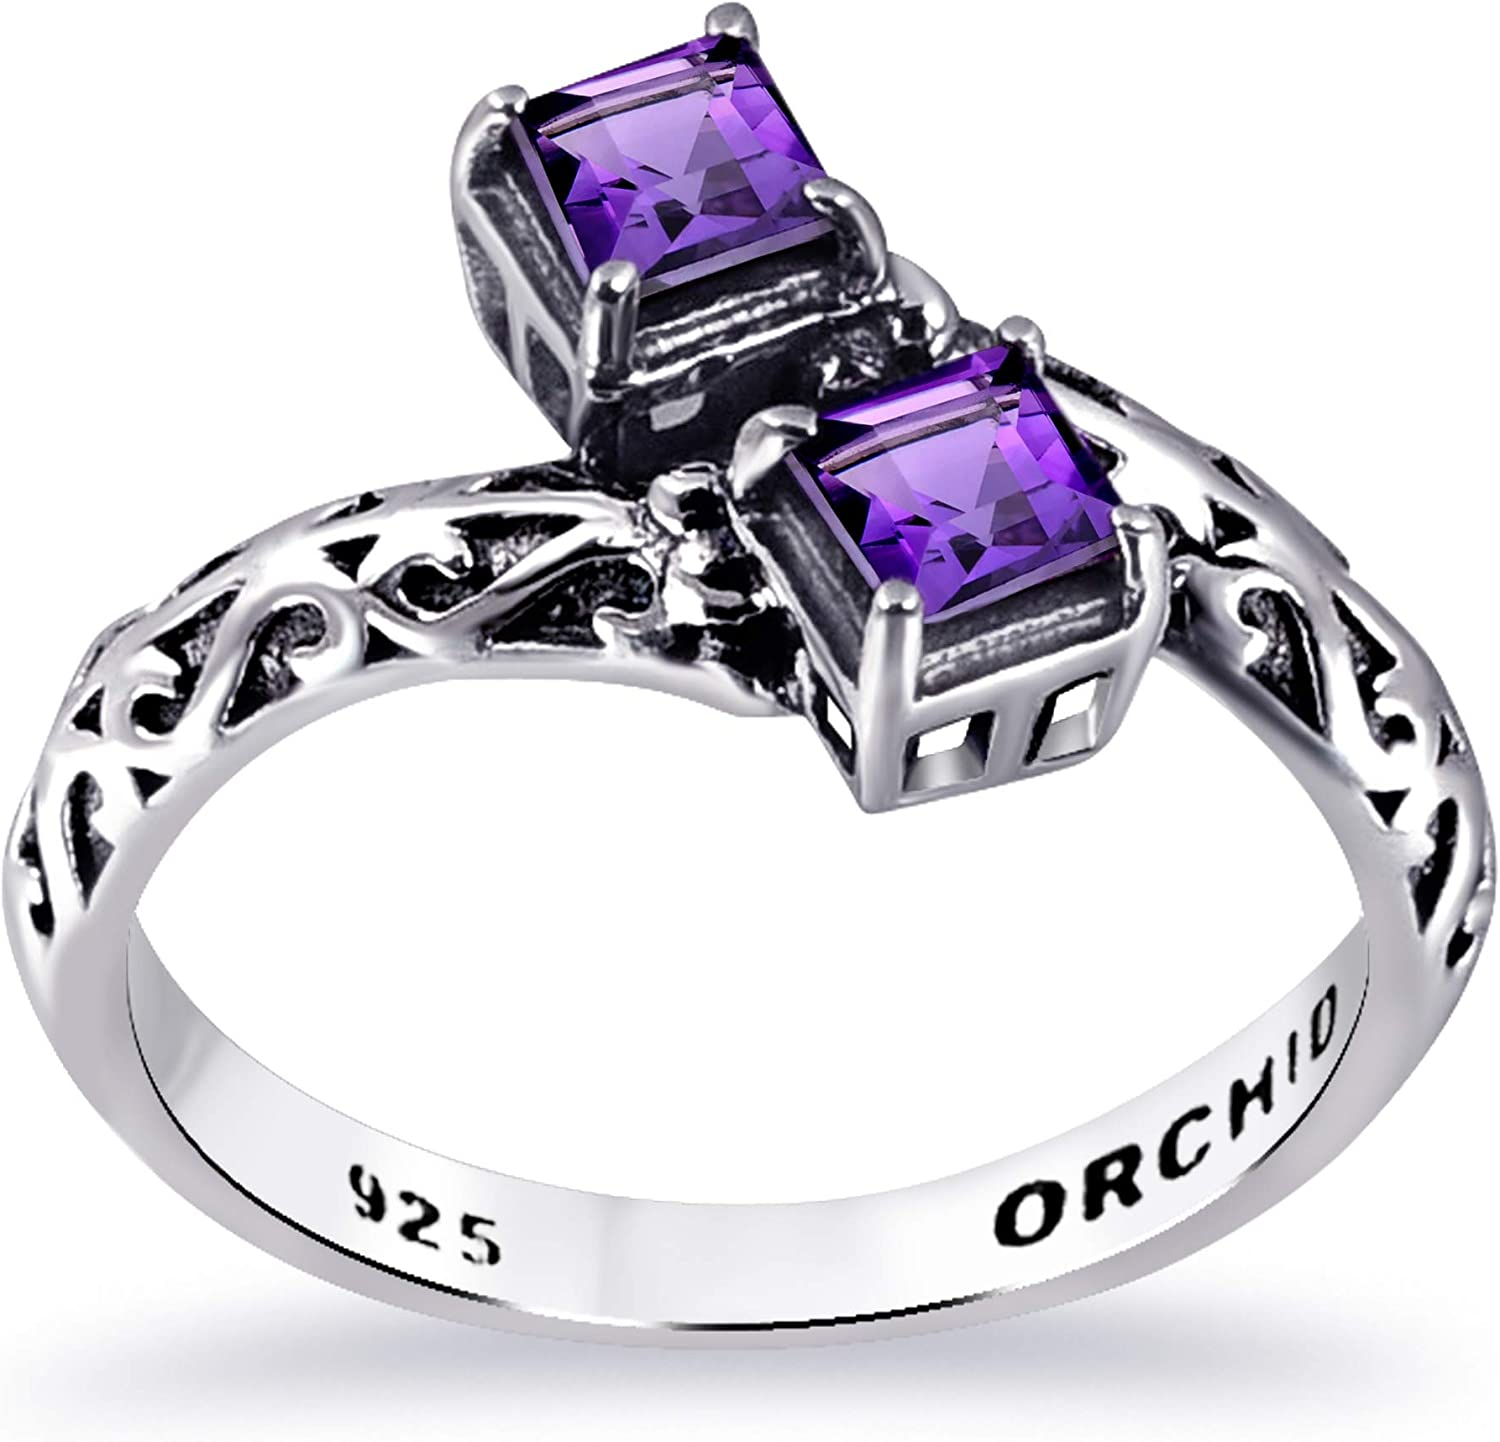 Orchid Jewelry Sterling Silver Miami Mall Stackable Women Purple supreme For Ring